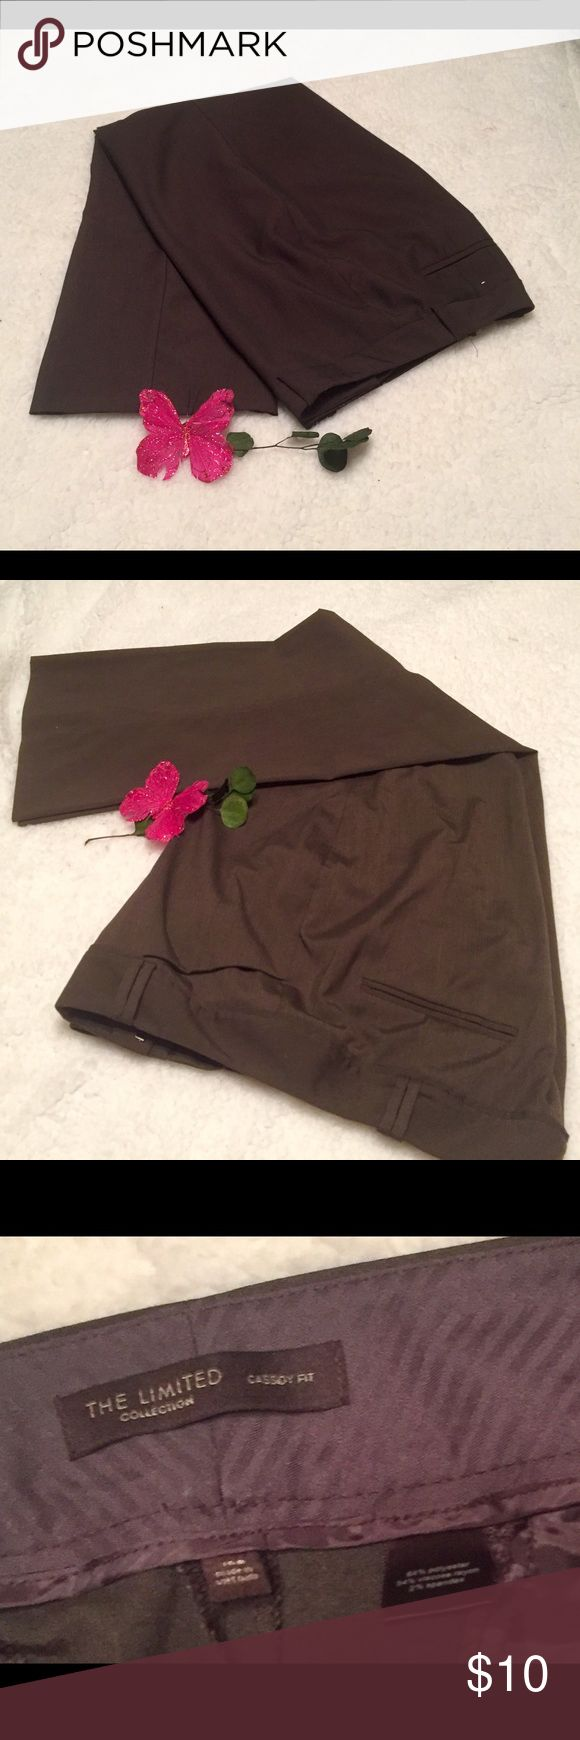 The Limited Collection classify fit Brown slacks 64% polyester 2 % spandex. Waist 38 rise 11 inseam 29 hip 44. The Limited Pants Trousers